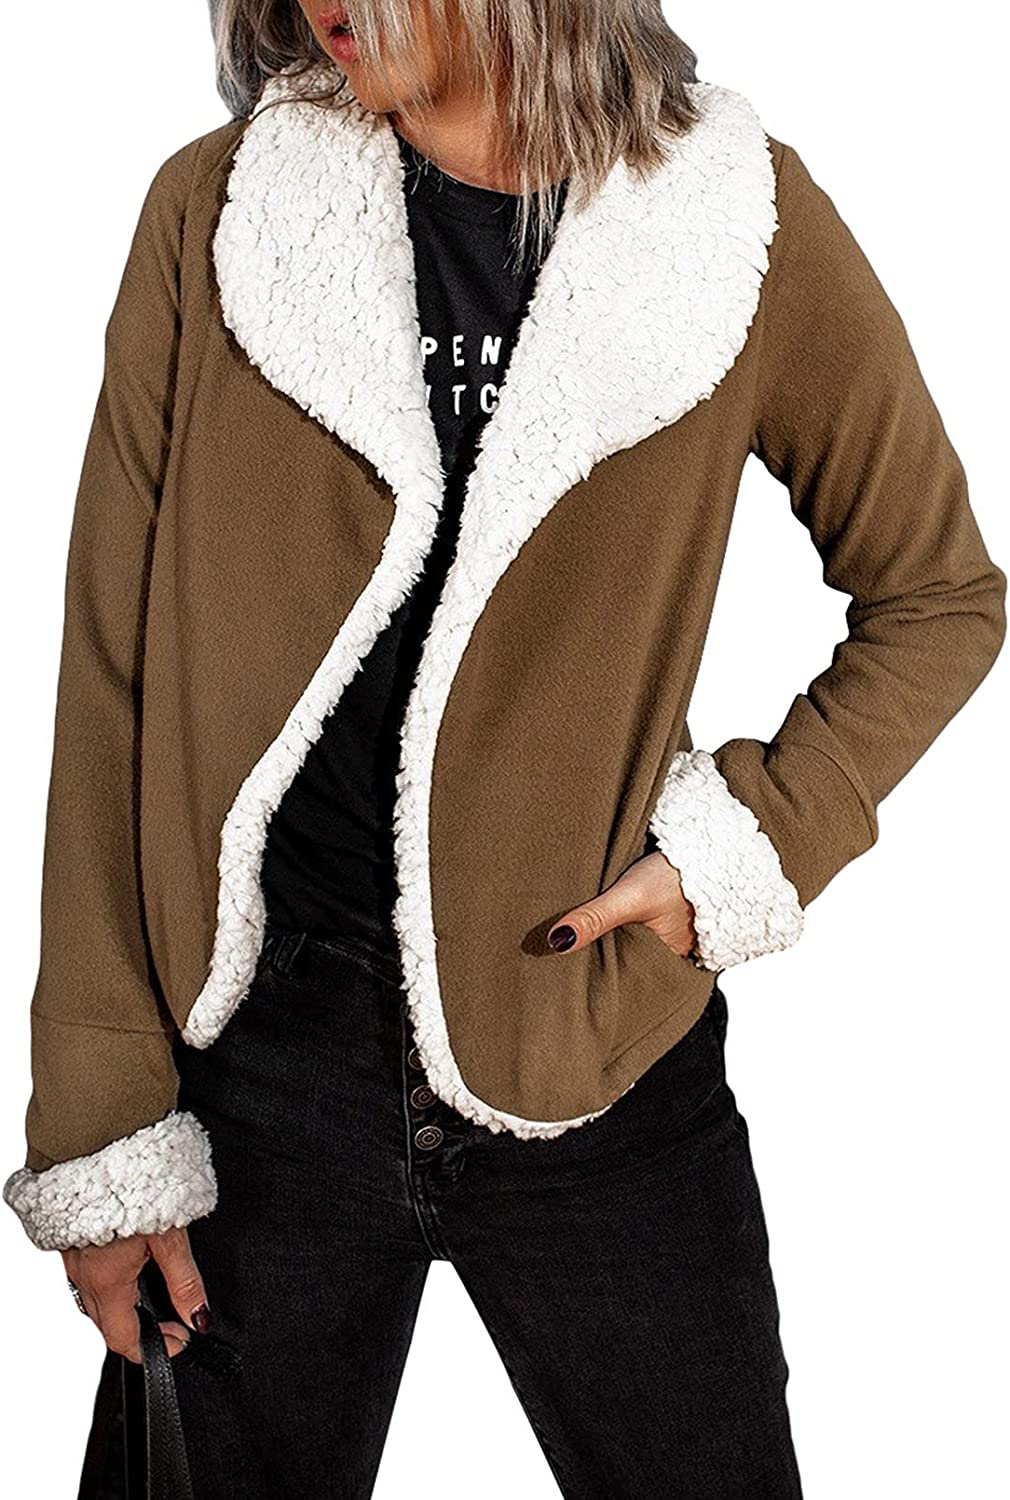 Astylish Women Casual Long Sleeve Outwear Jacket Fleece with Poc Cash Outstanding special price